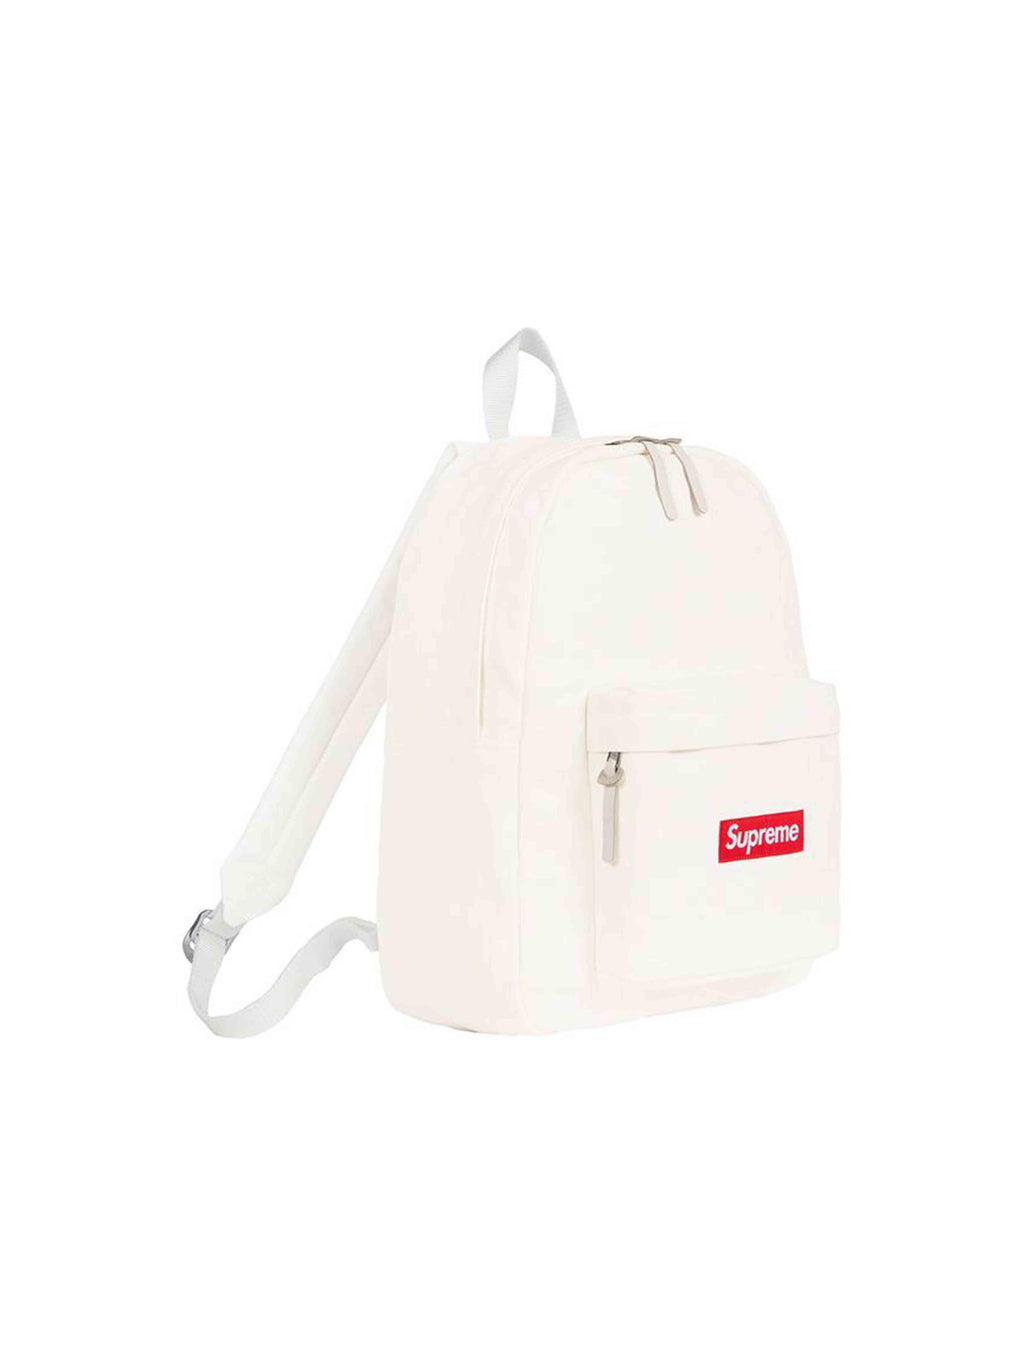 Supreme Canvas Backpack White [FW20] - PRIOR